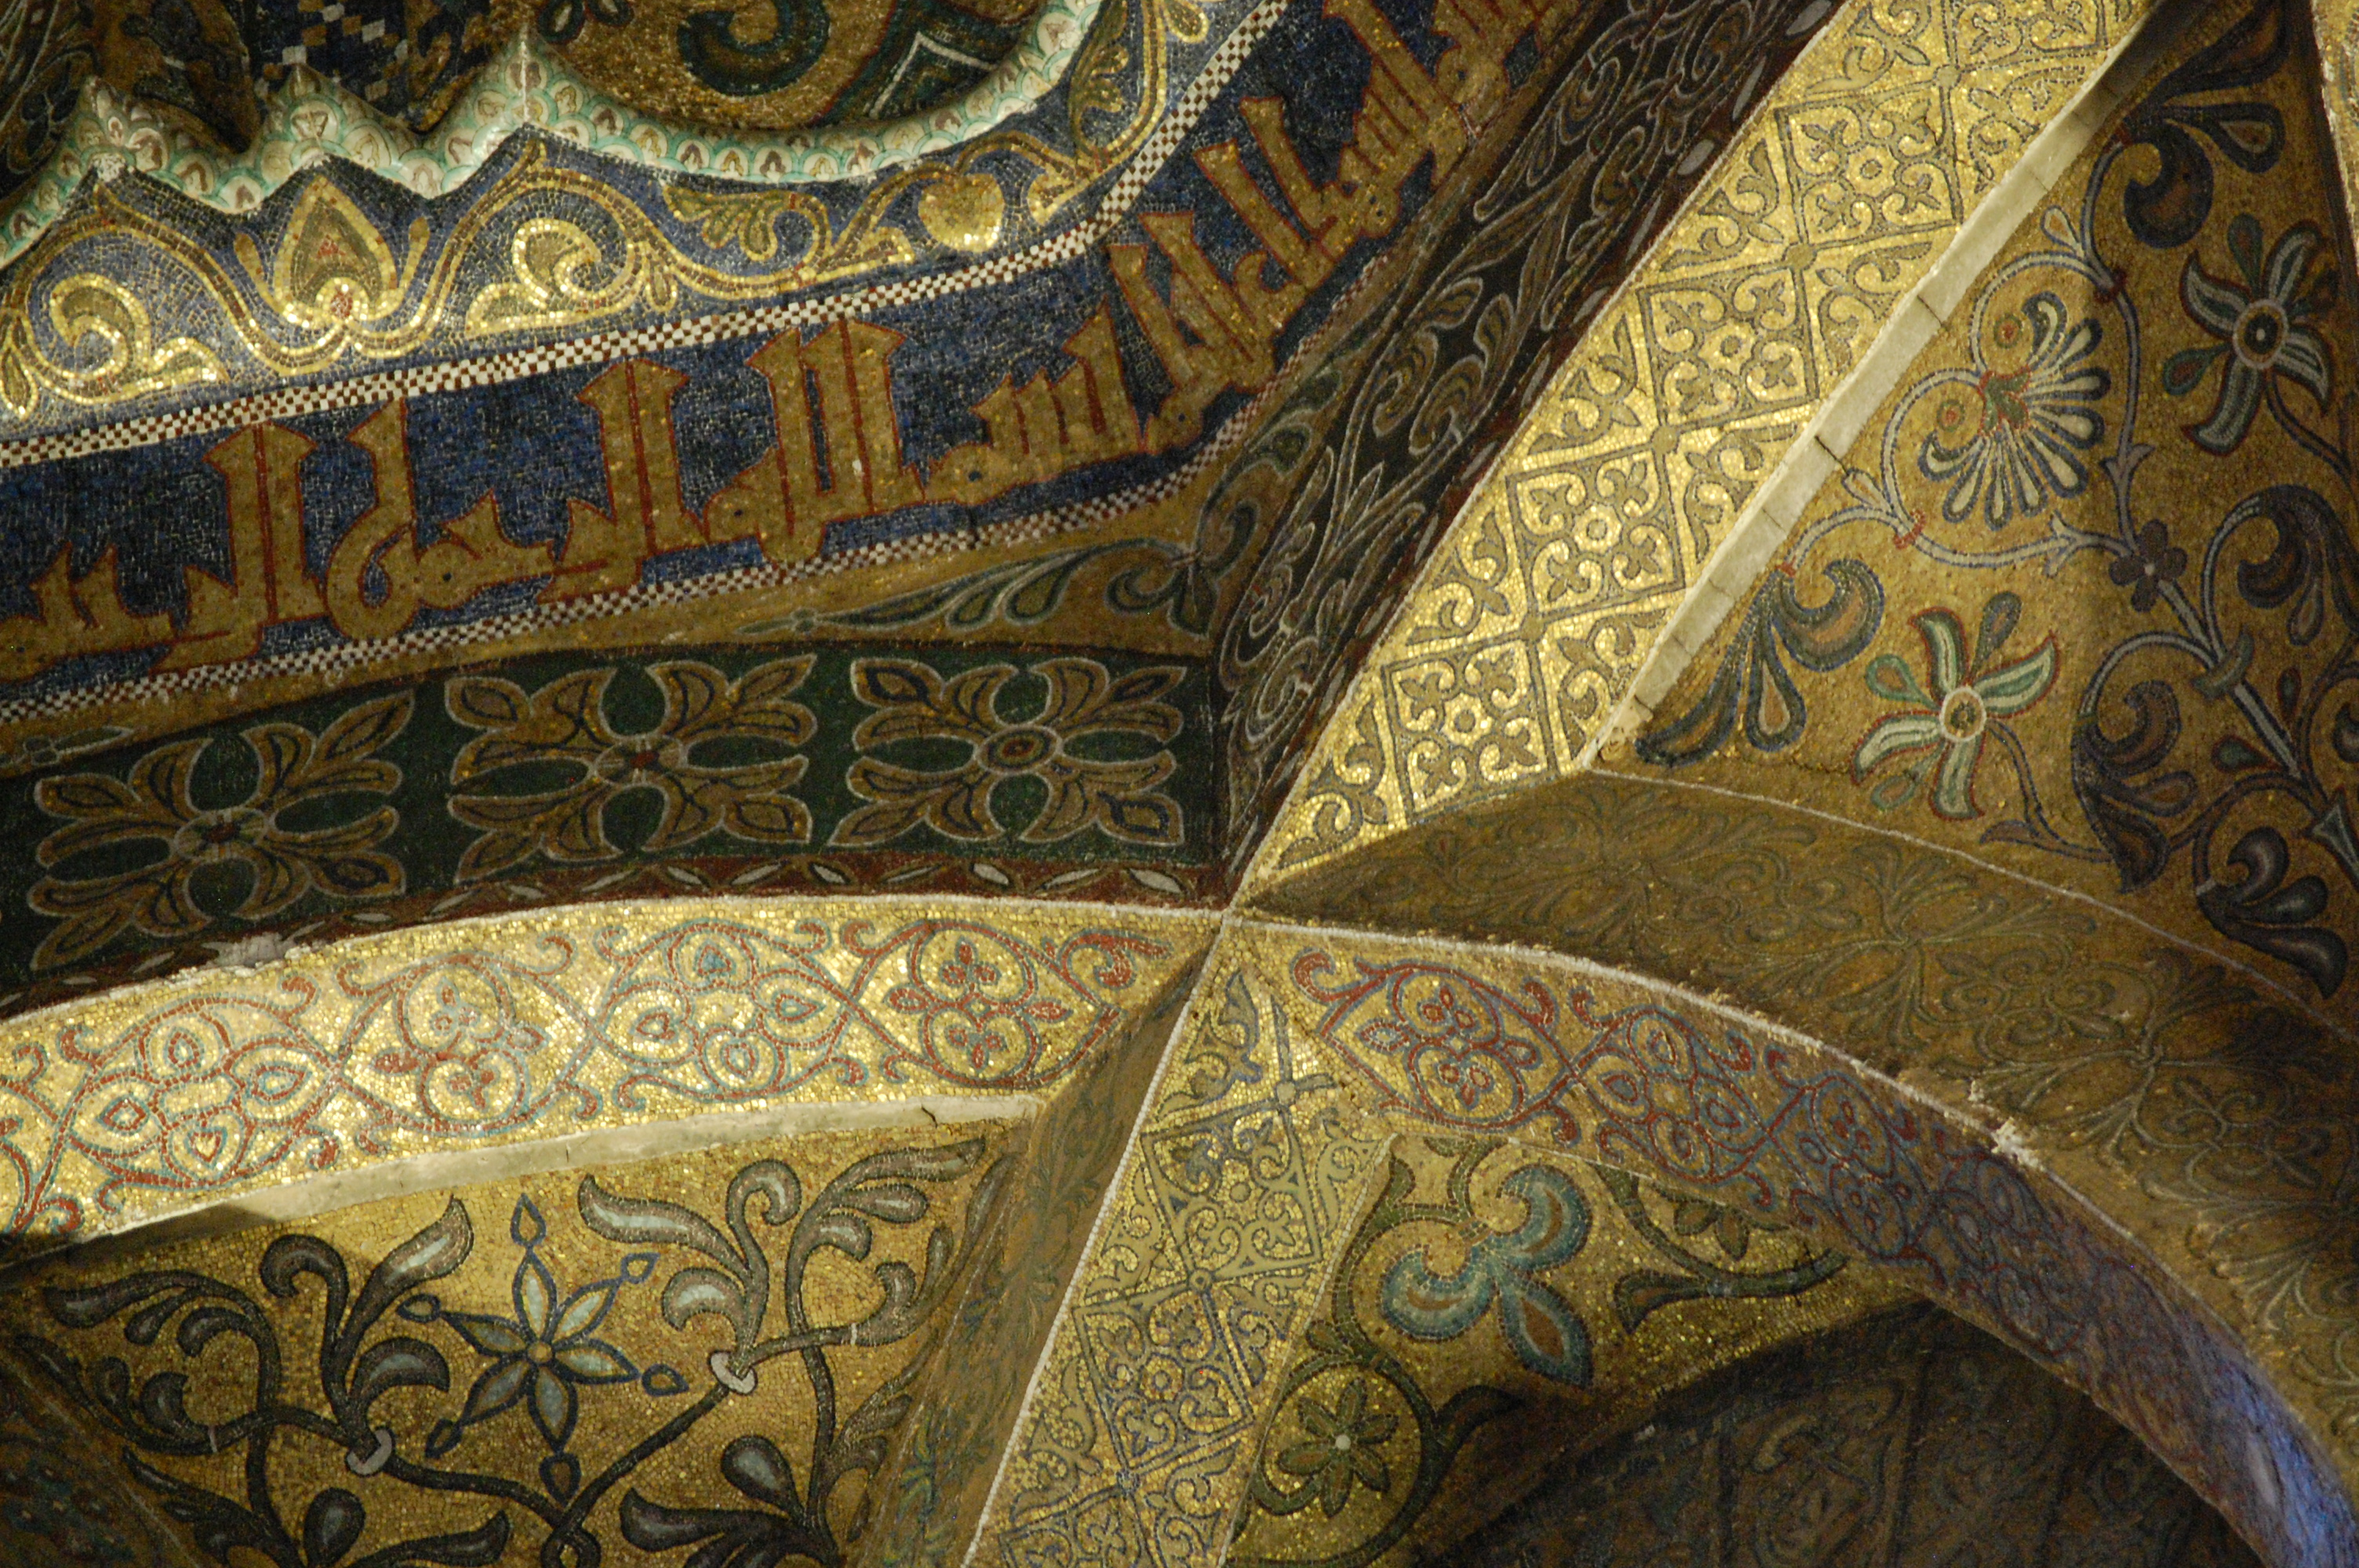 Rib Detail, Minrab Dome, Great Mosque of Cordoba (photo: Manuel Parada López de Corselas)